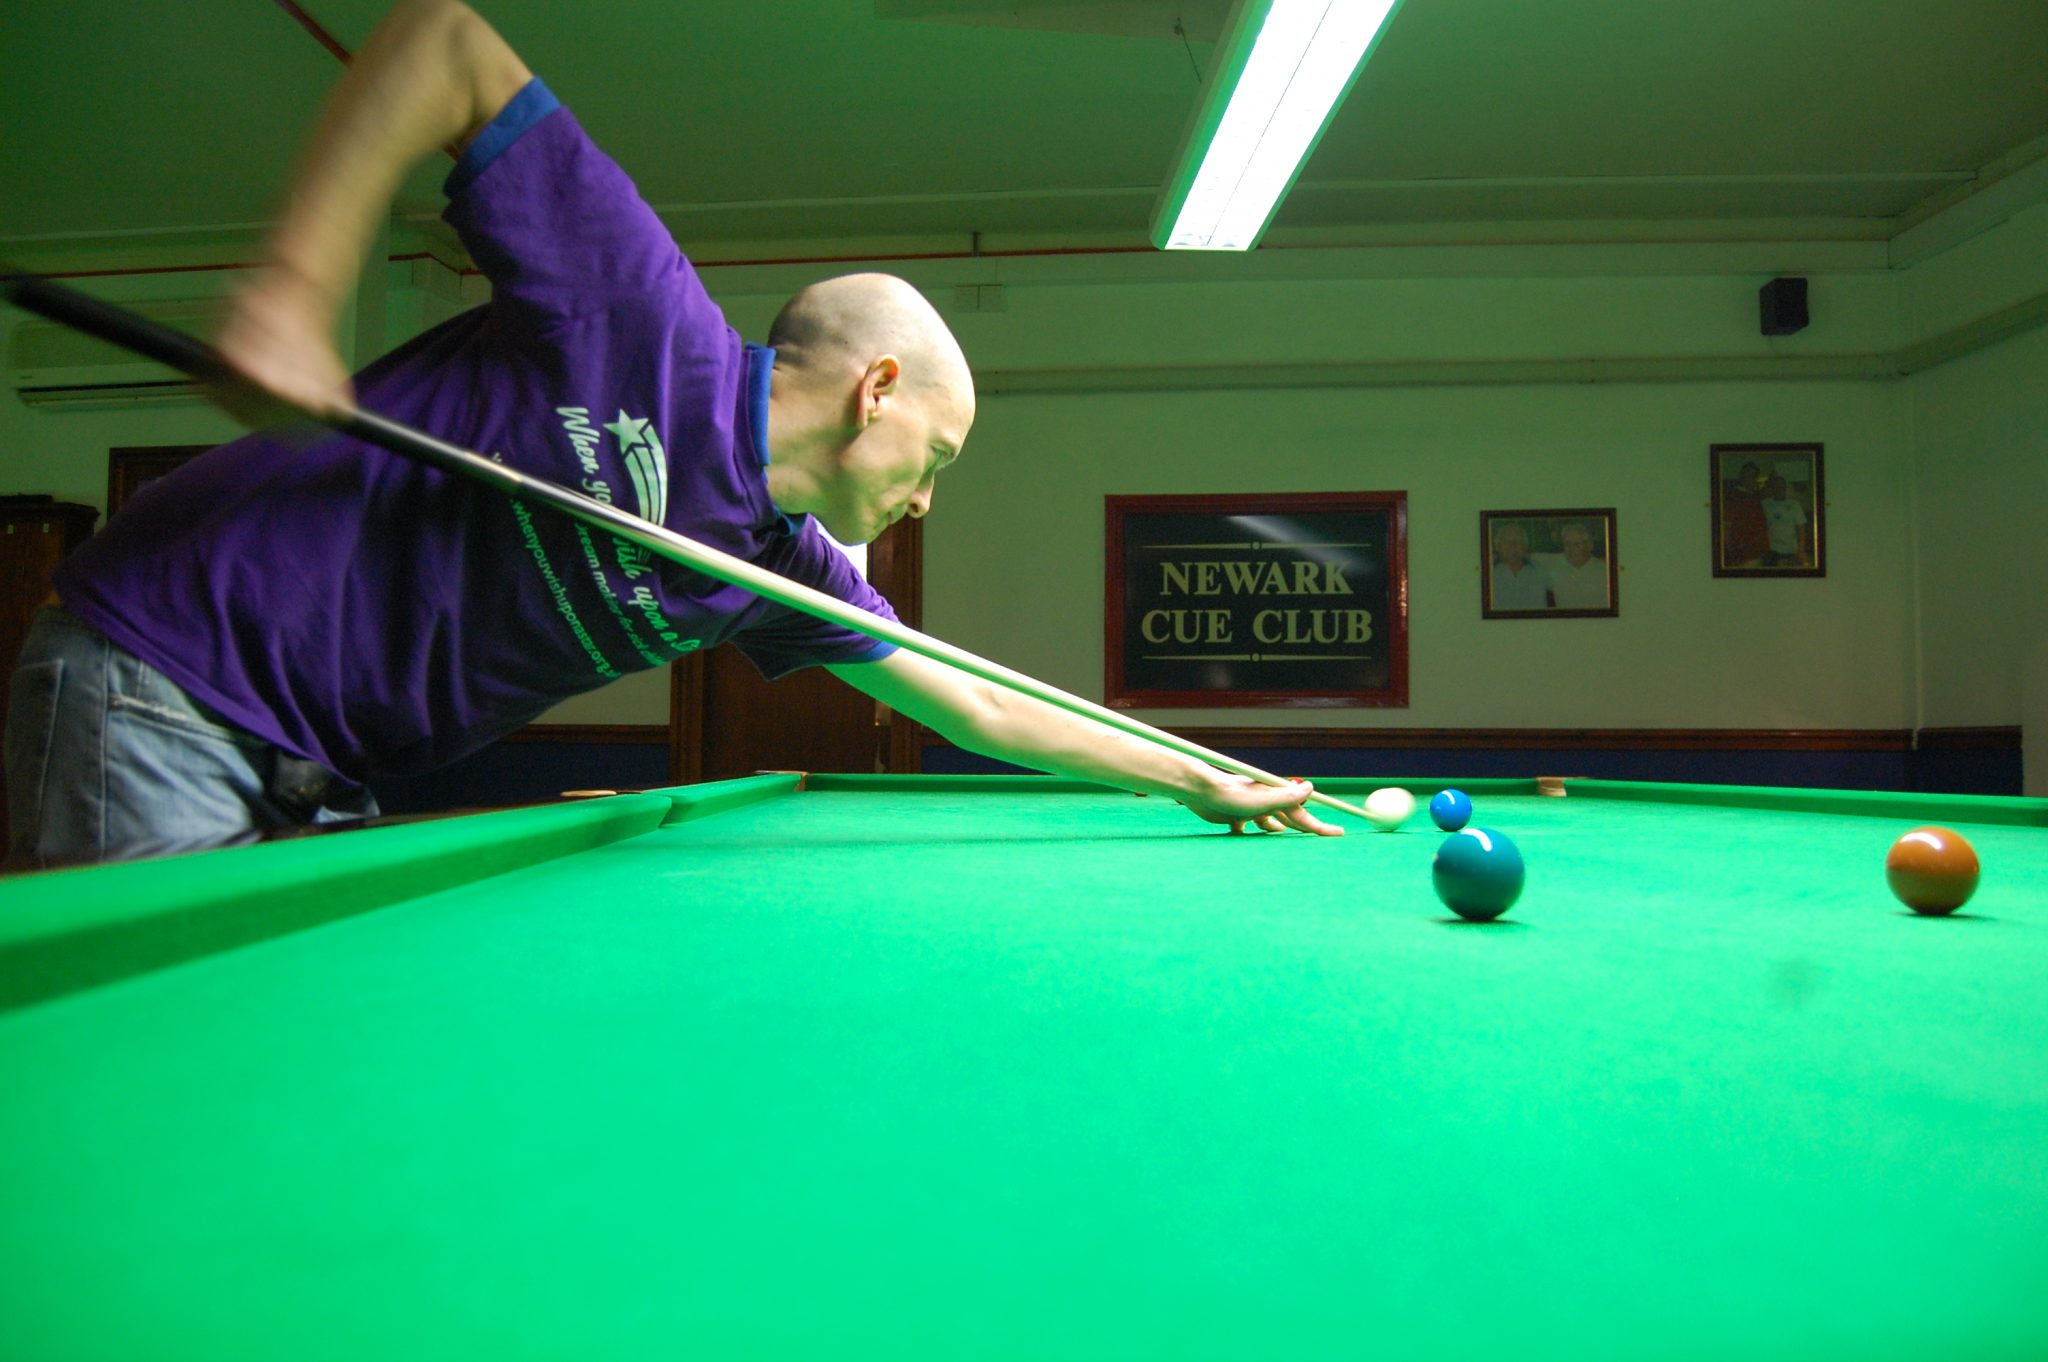 Jon victorious again at Newark Cue Club